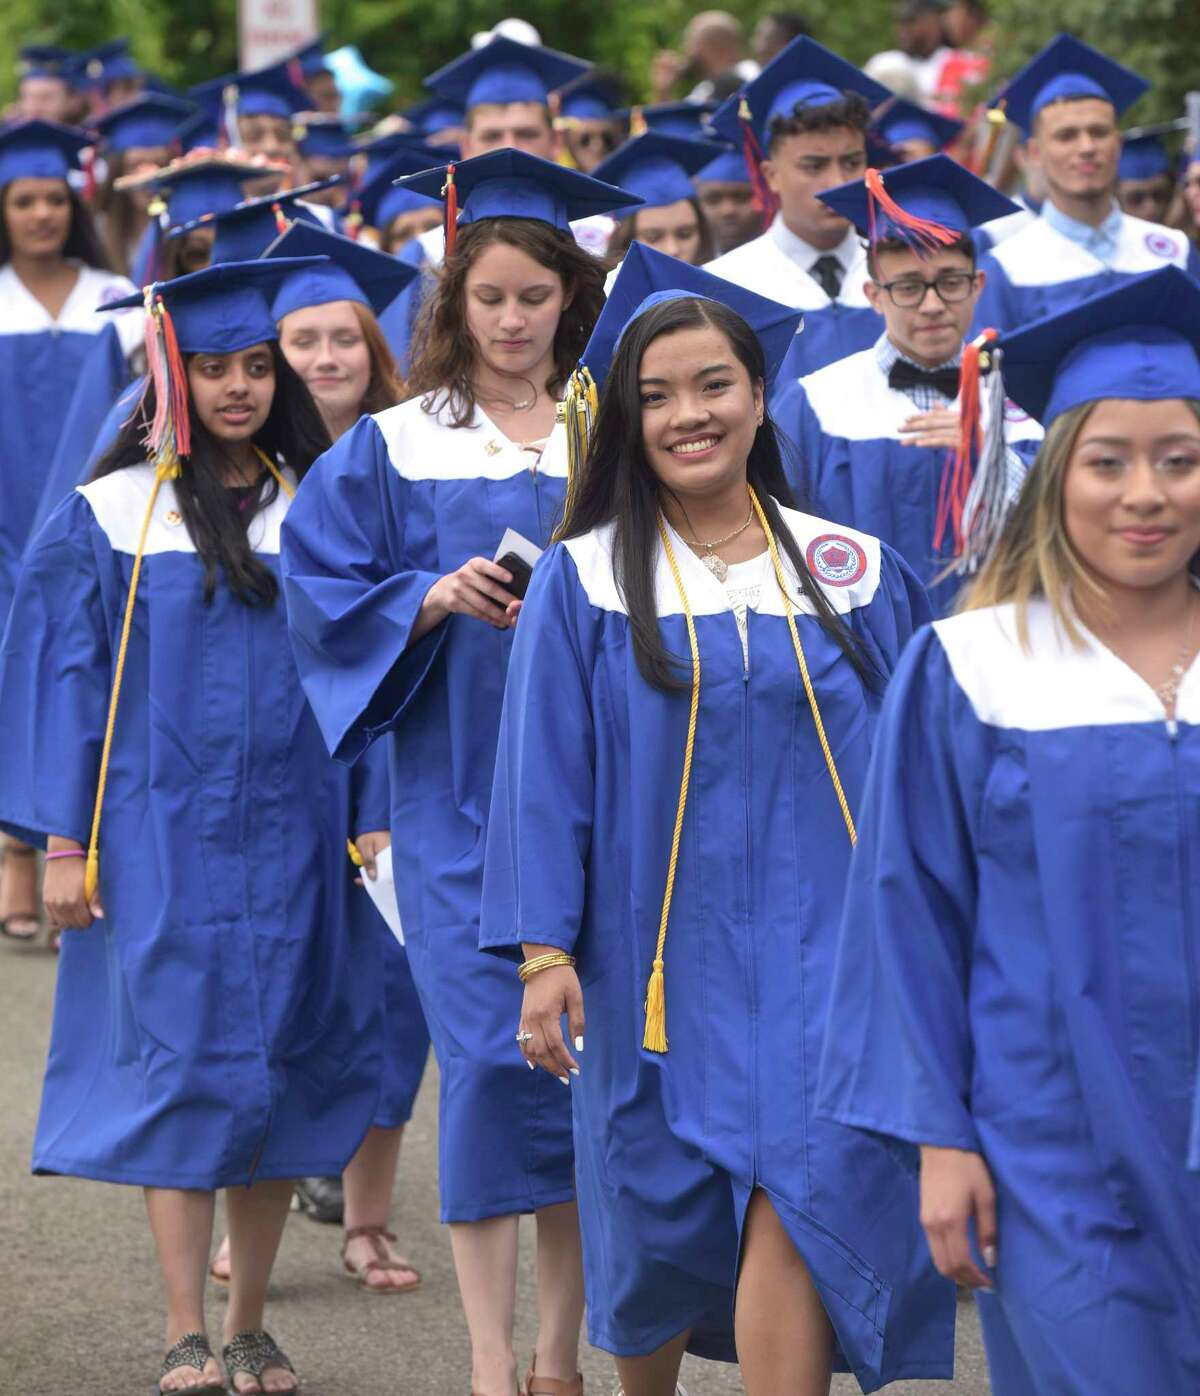 Danbury High School 2018 Graduation, Friday evening, June 22, 2018, at Danbury High School, Danbury, Conn.